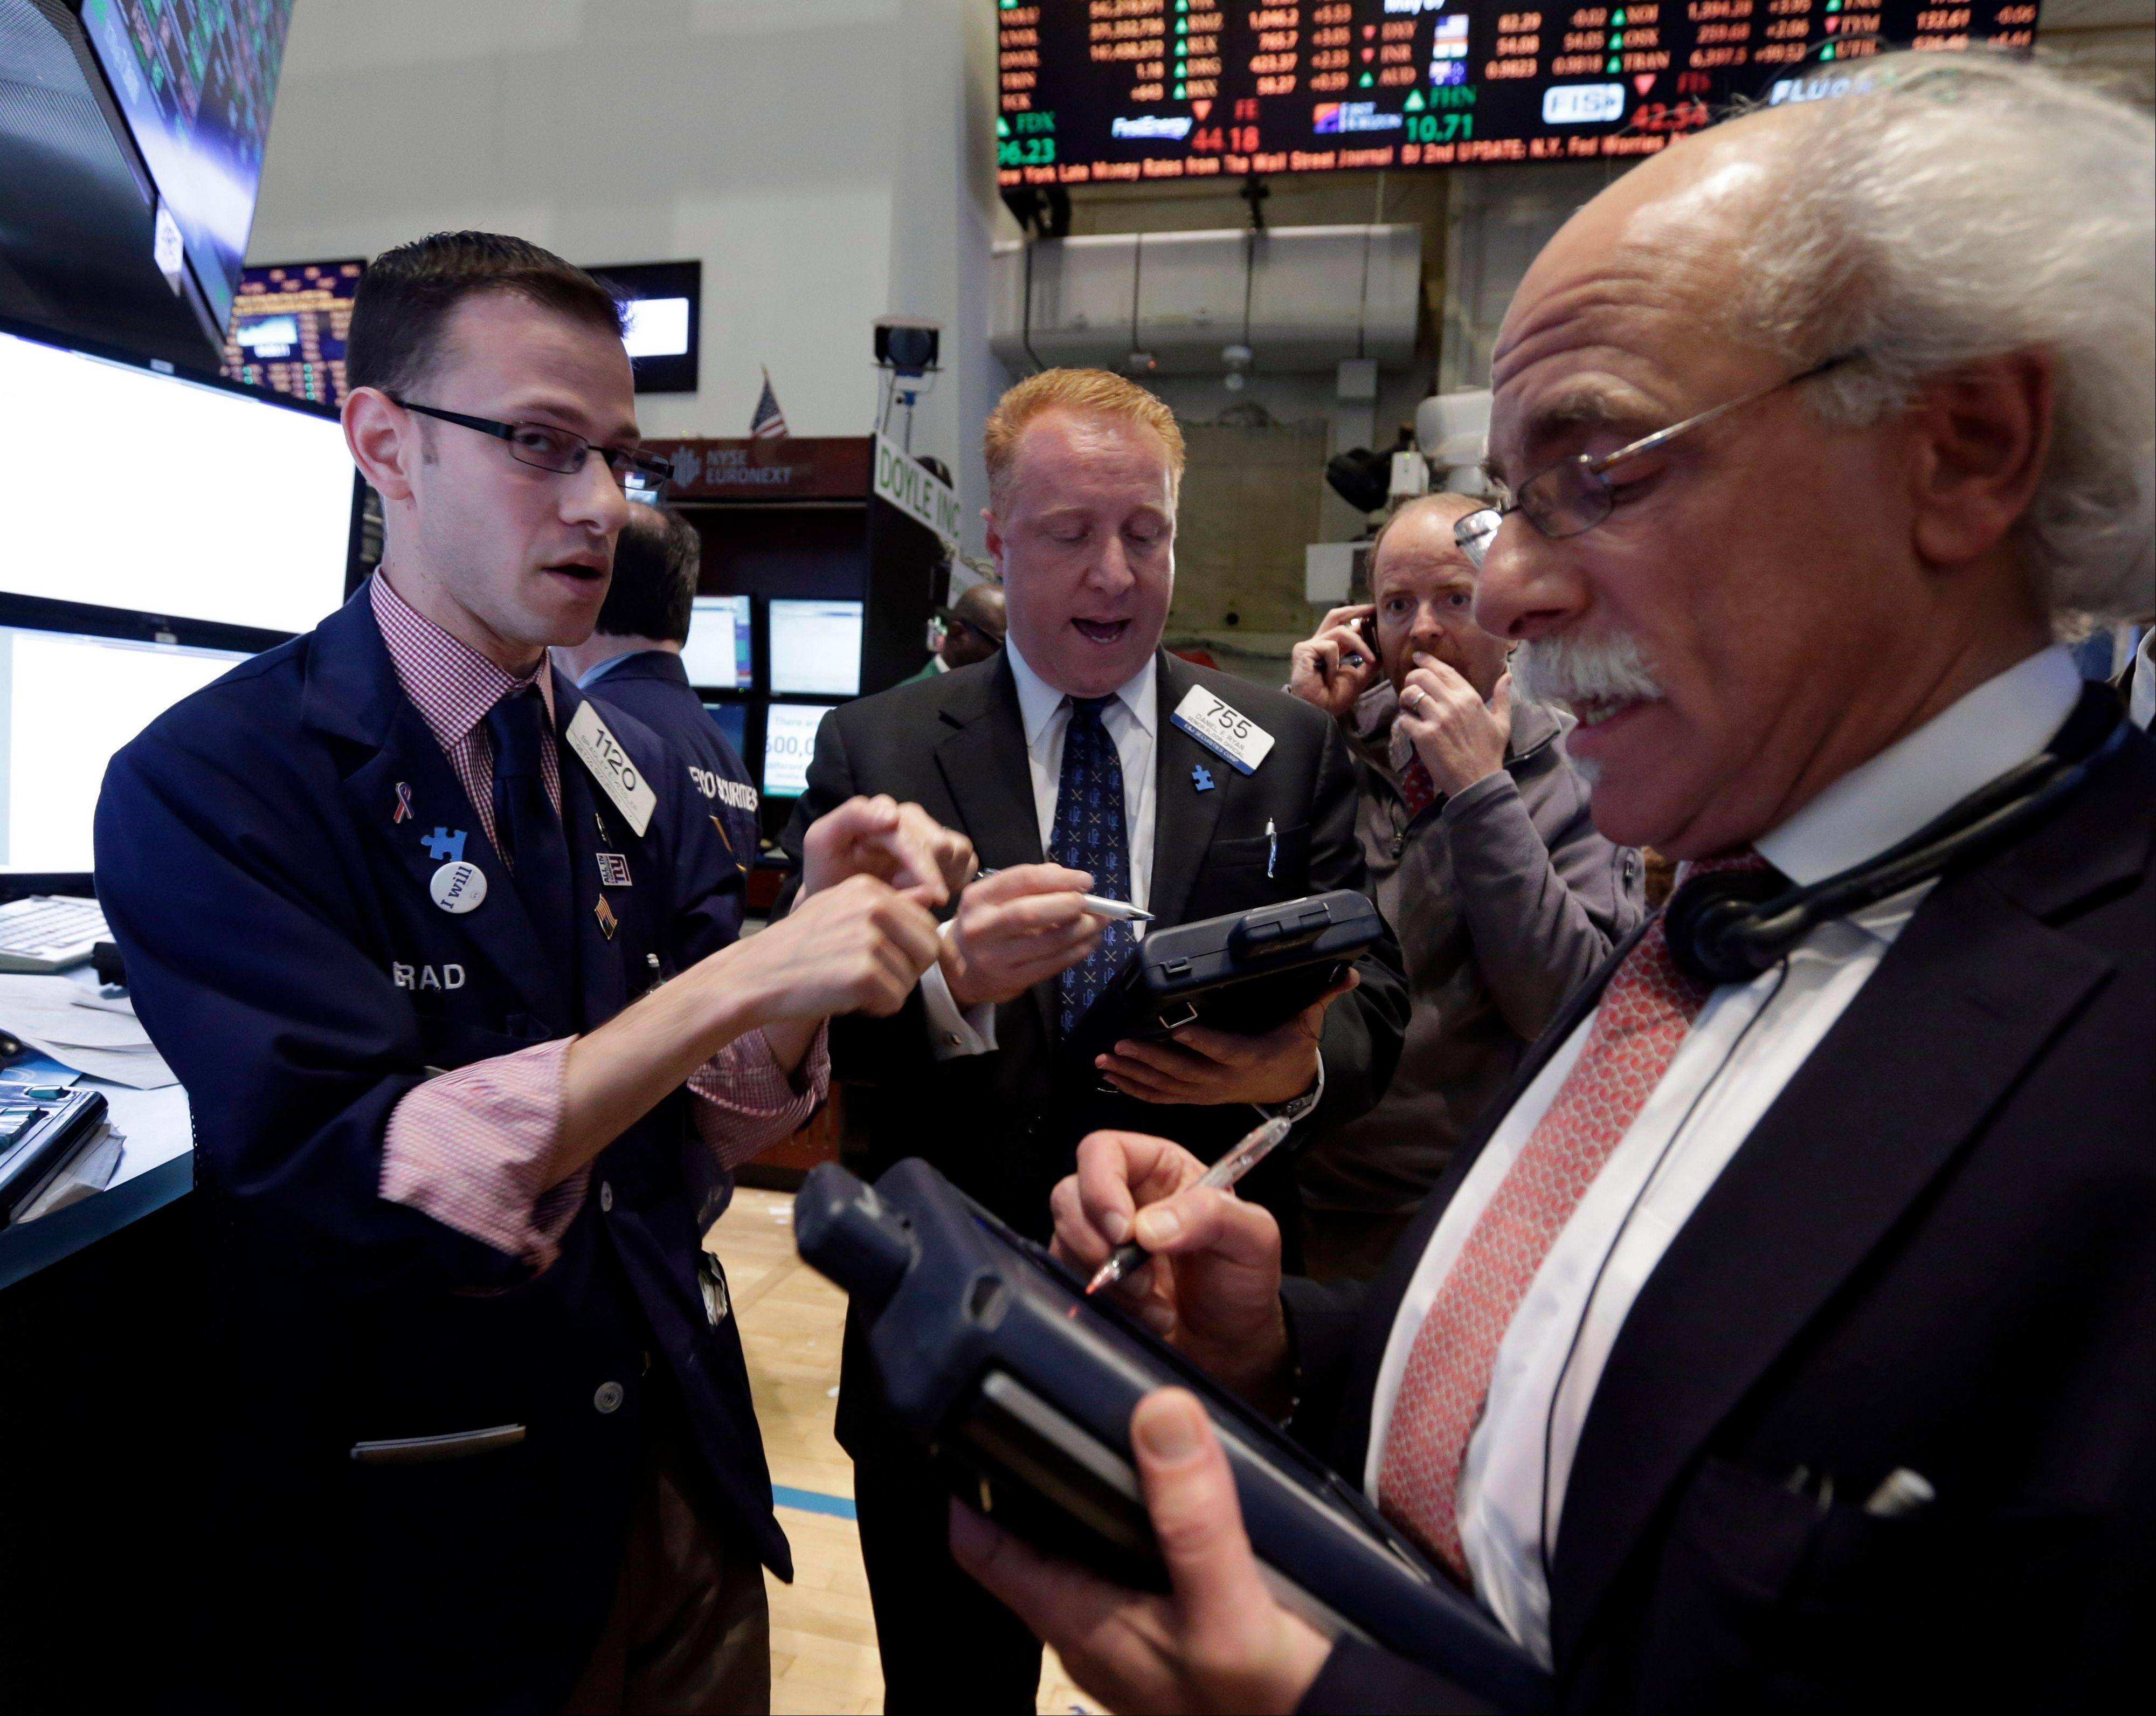 U.S. stocks fell, ending four days of records for the Standard & Poor's 500 Index, amid disappointing economic data and after a Federal Reserve official said the central bank may slow the pace of stimulus as early as this summer.